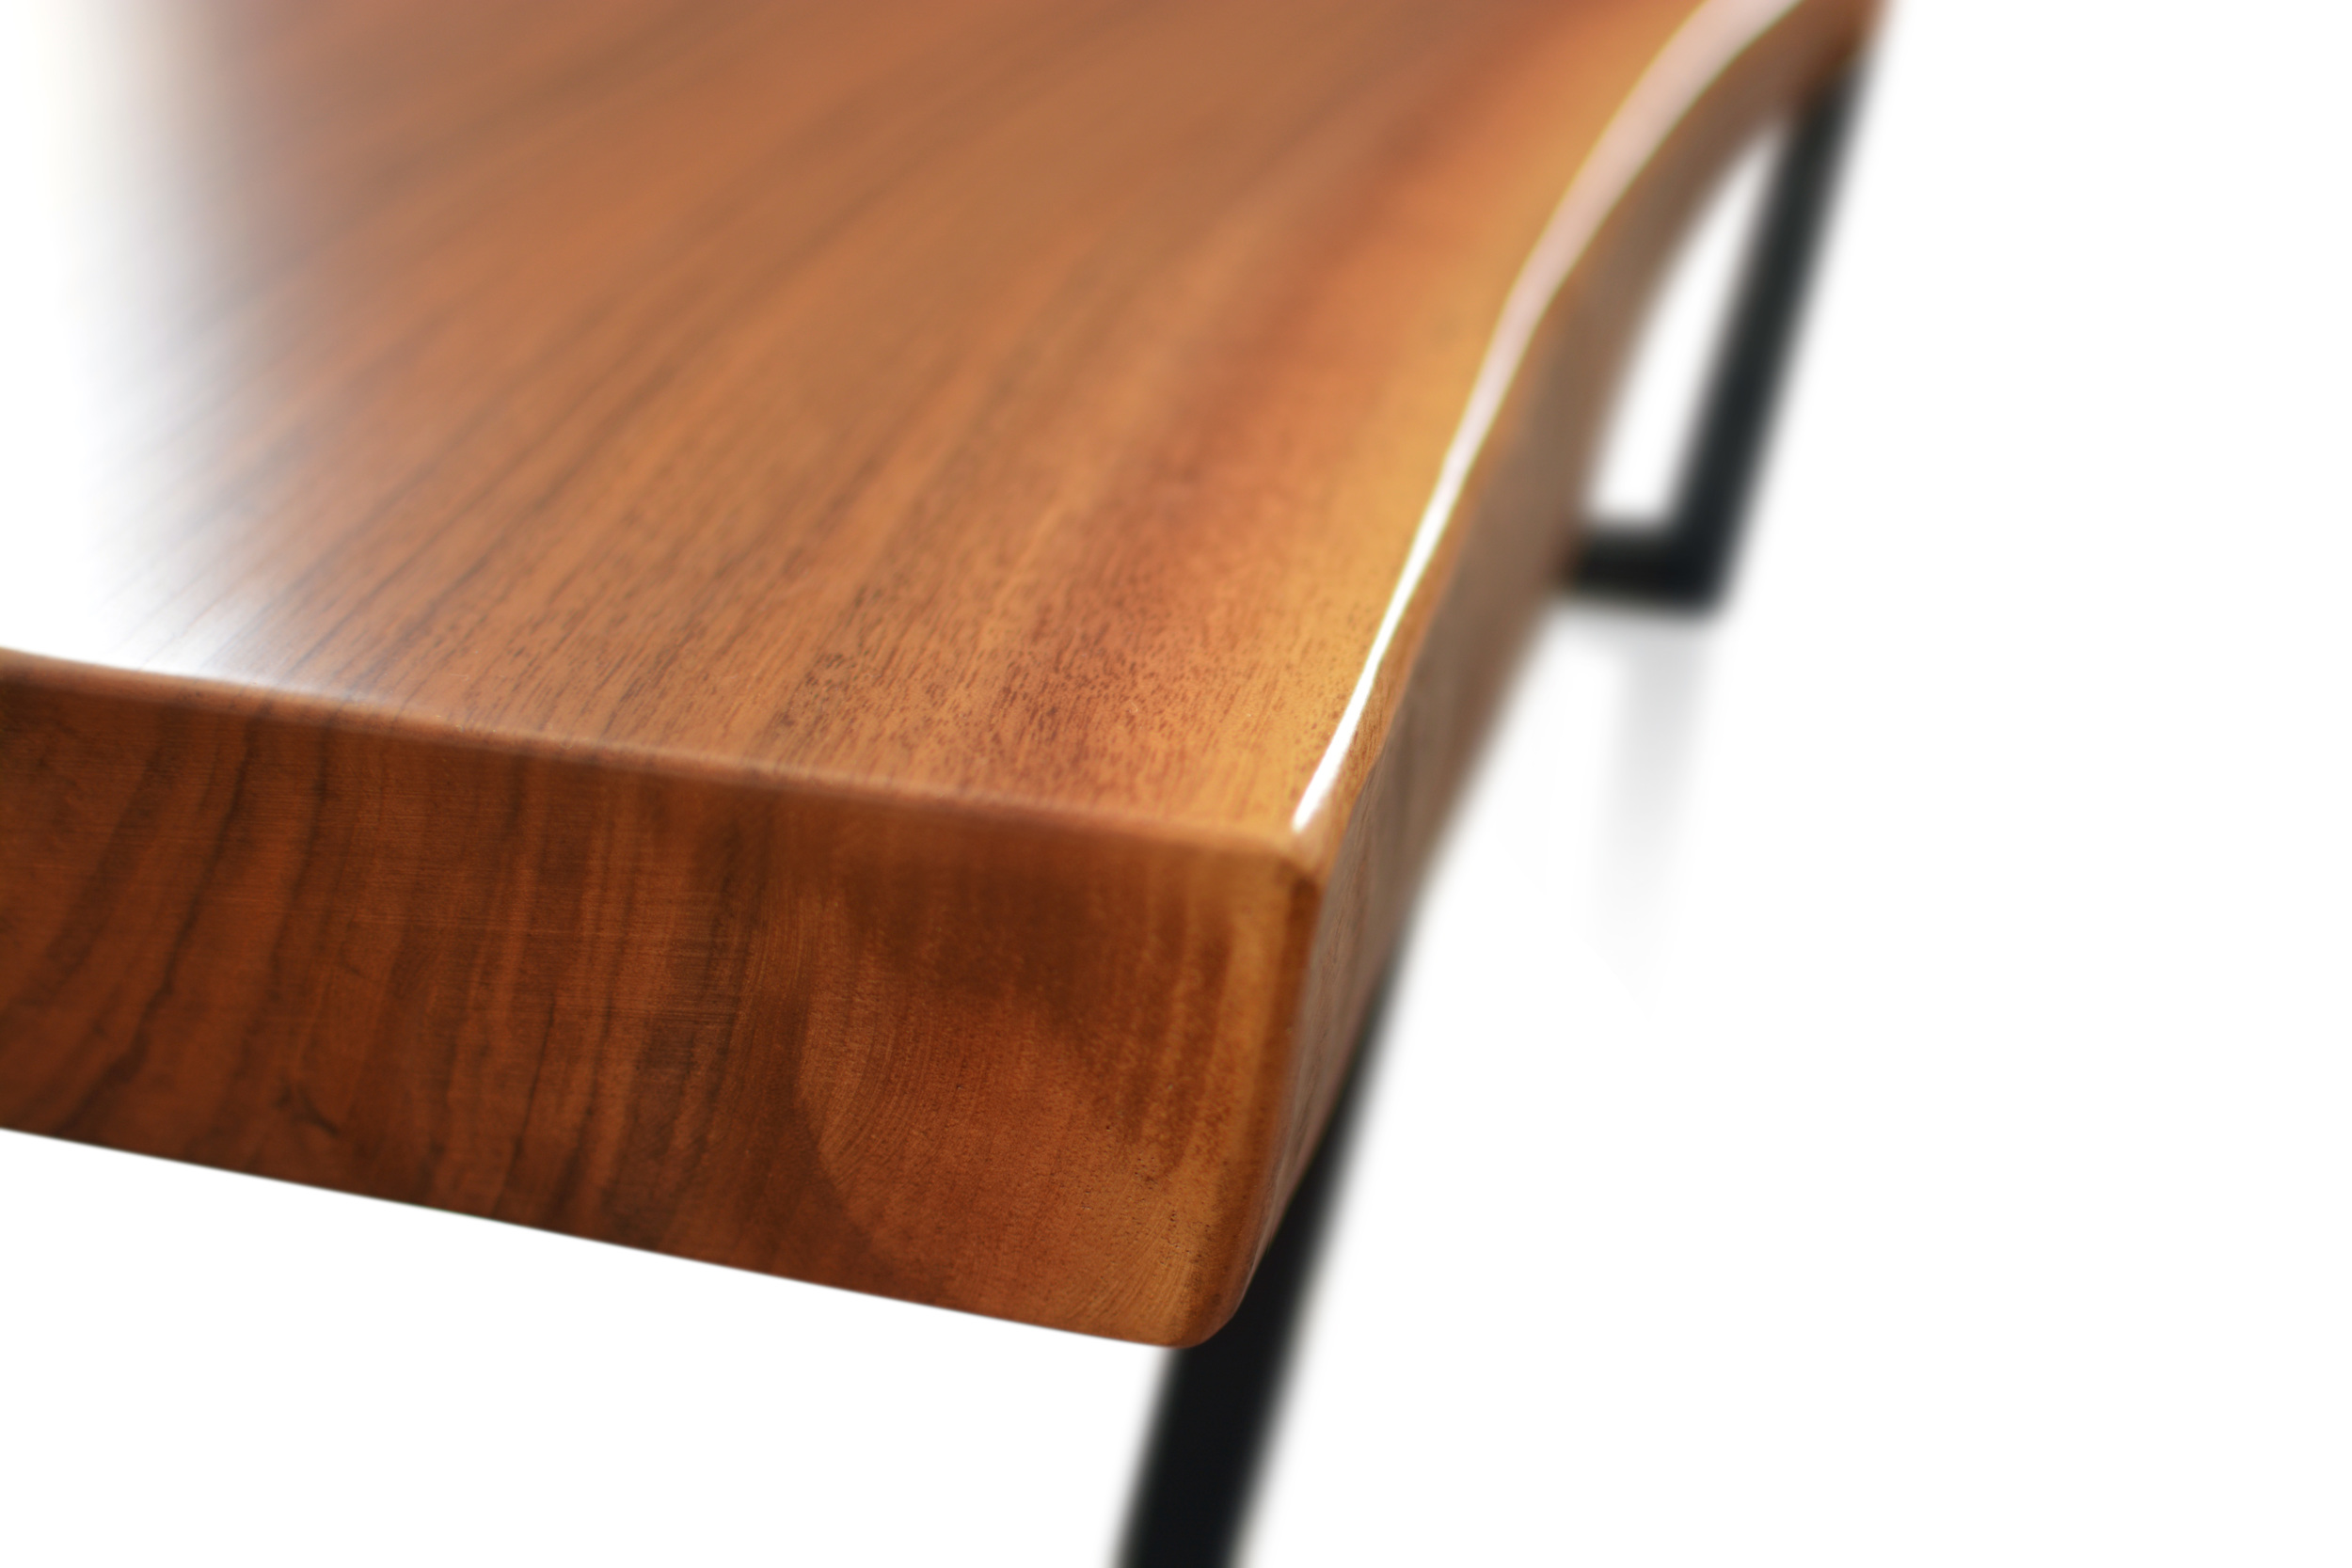 Etz & Steel Mocha Live Edge Table Close Up 3.JPG